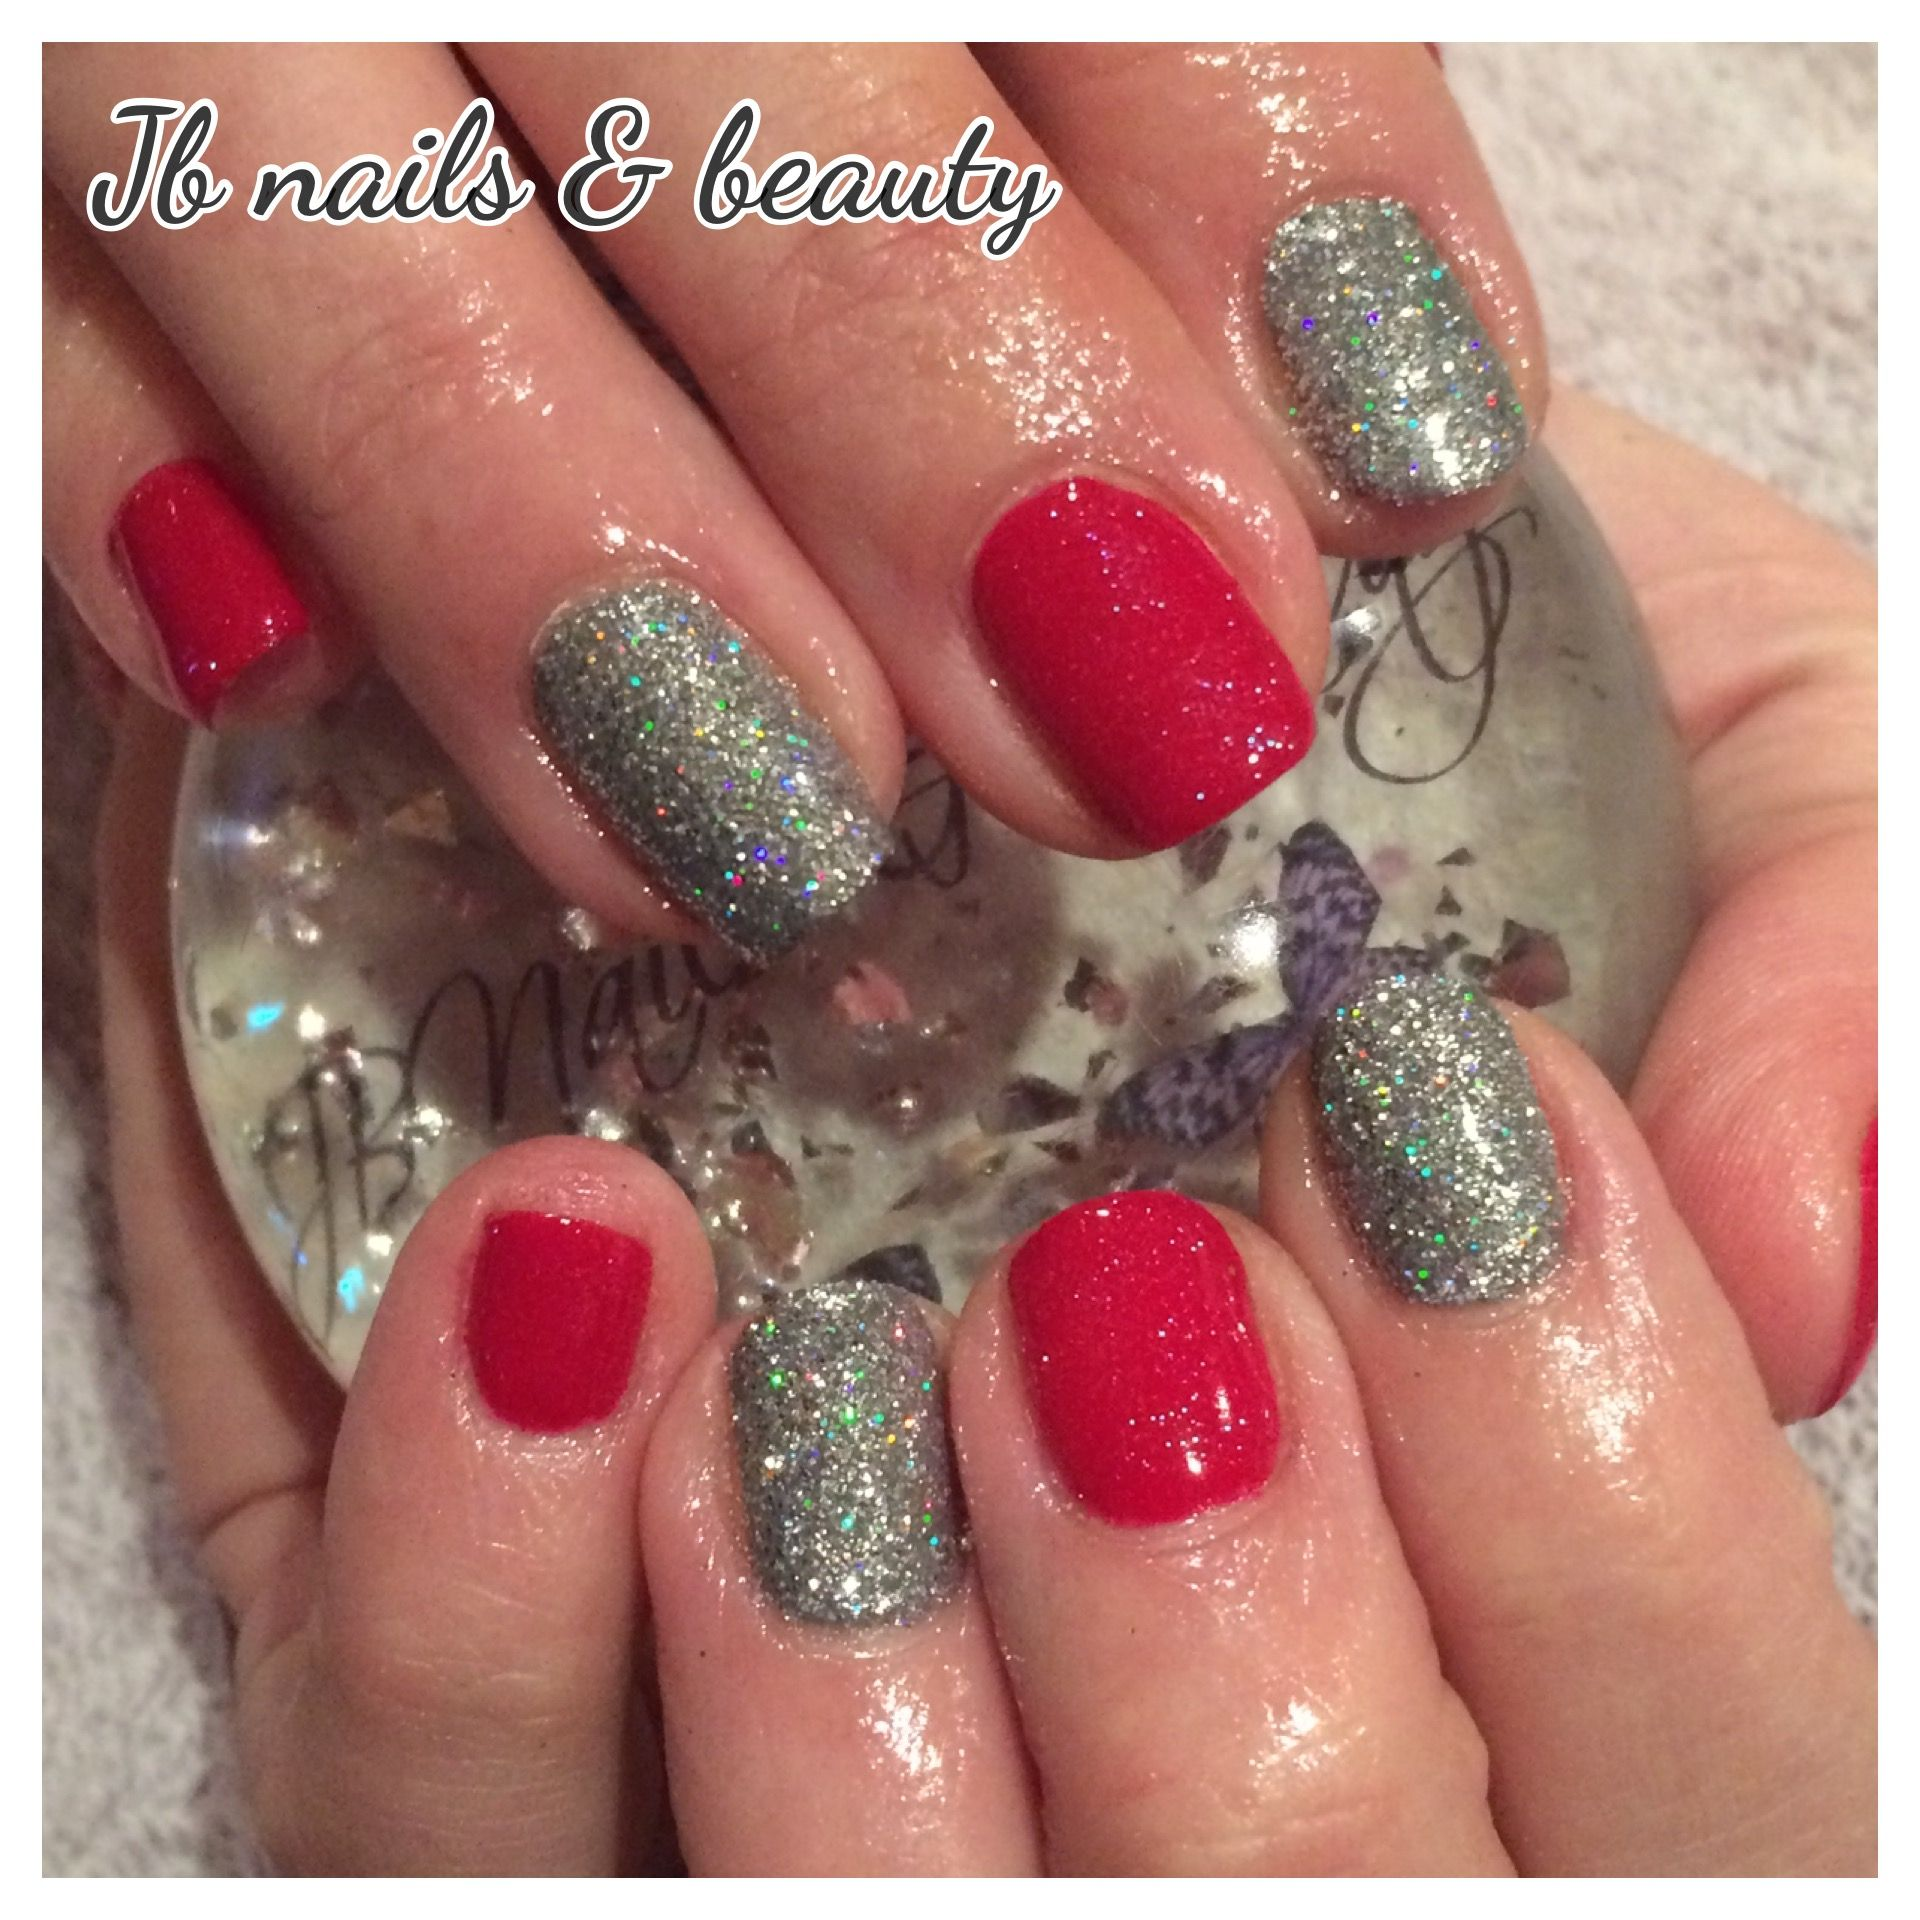 Red & silver gel polish on natural nails